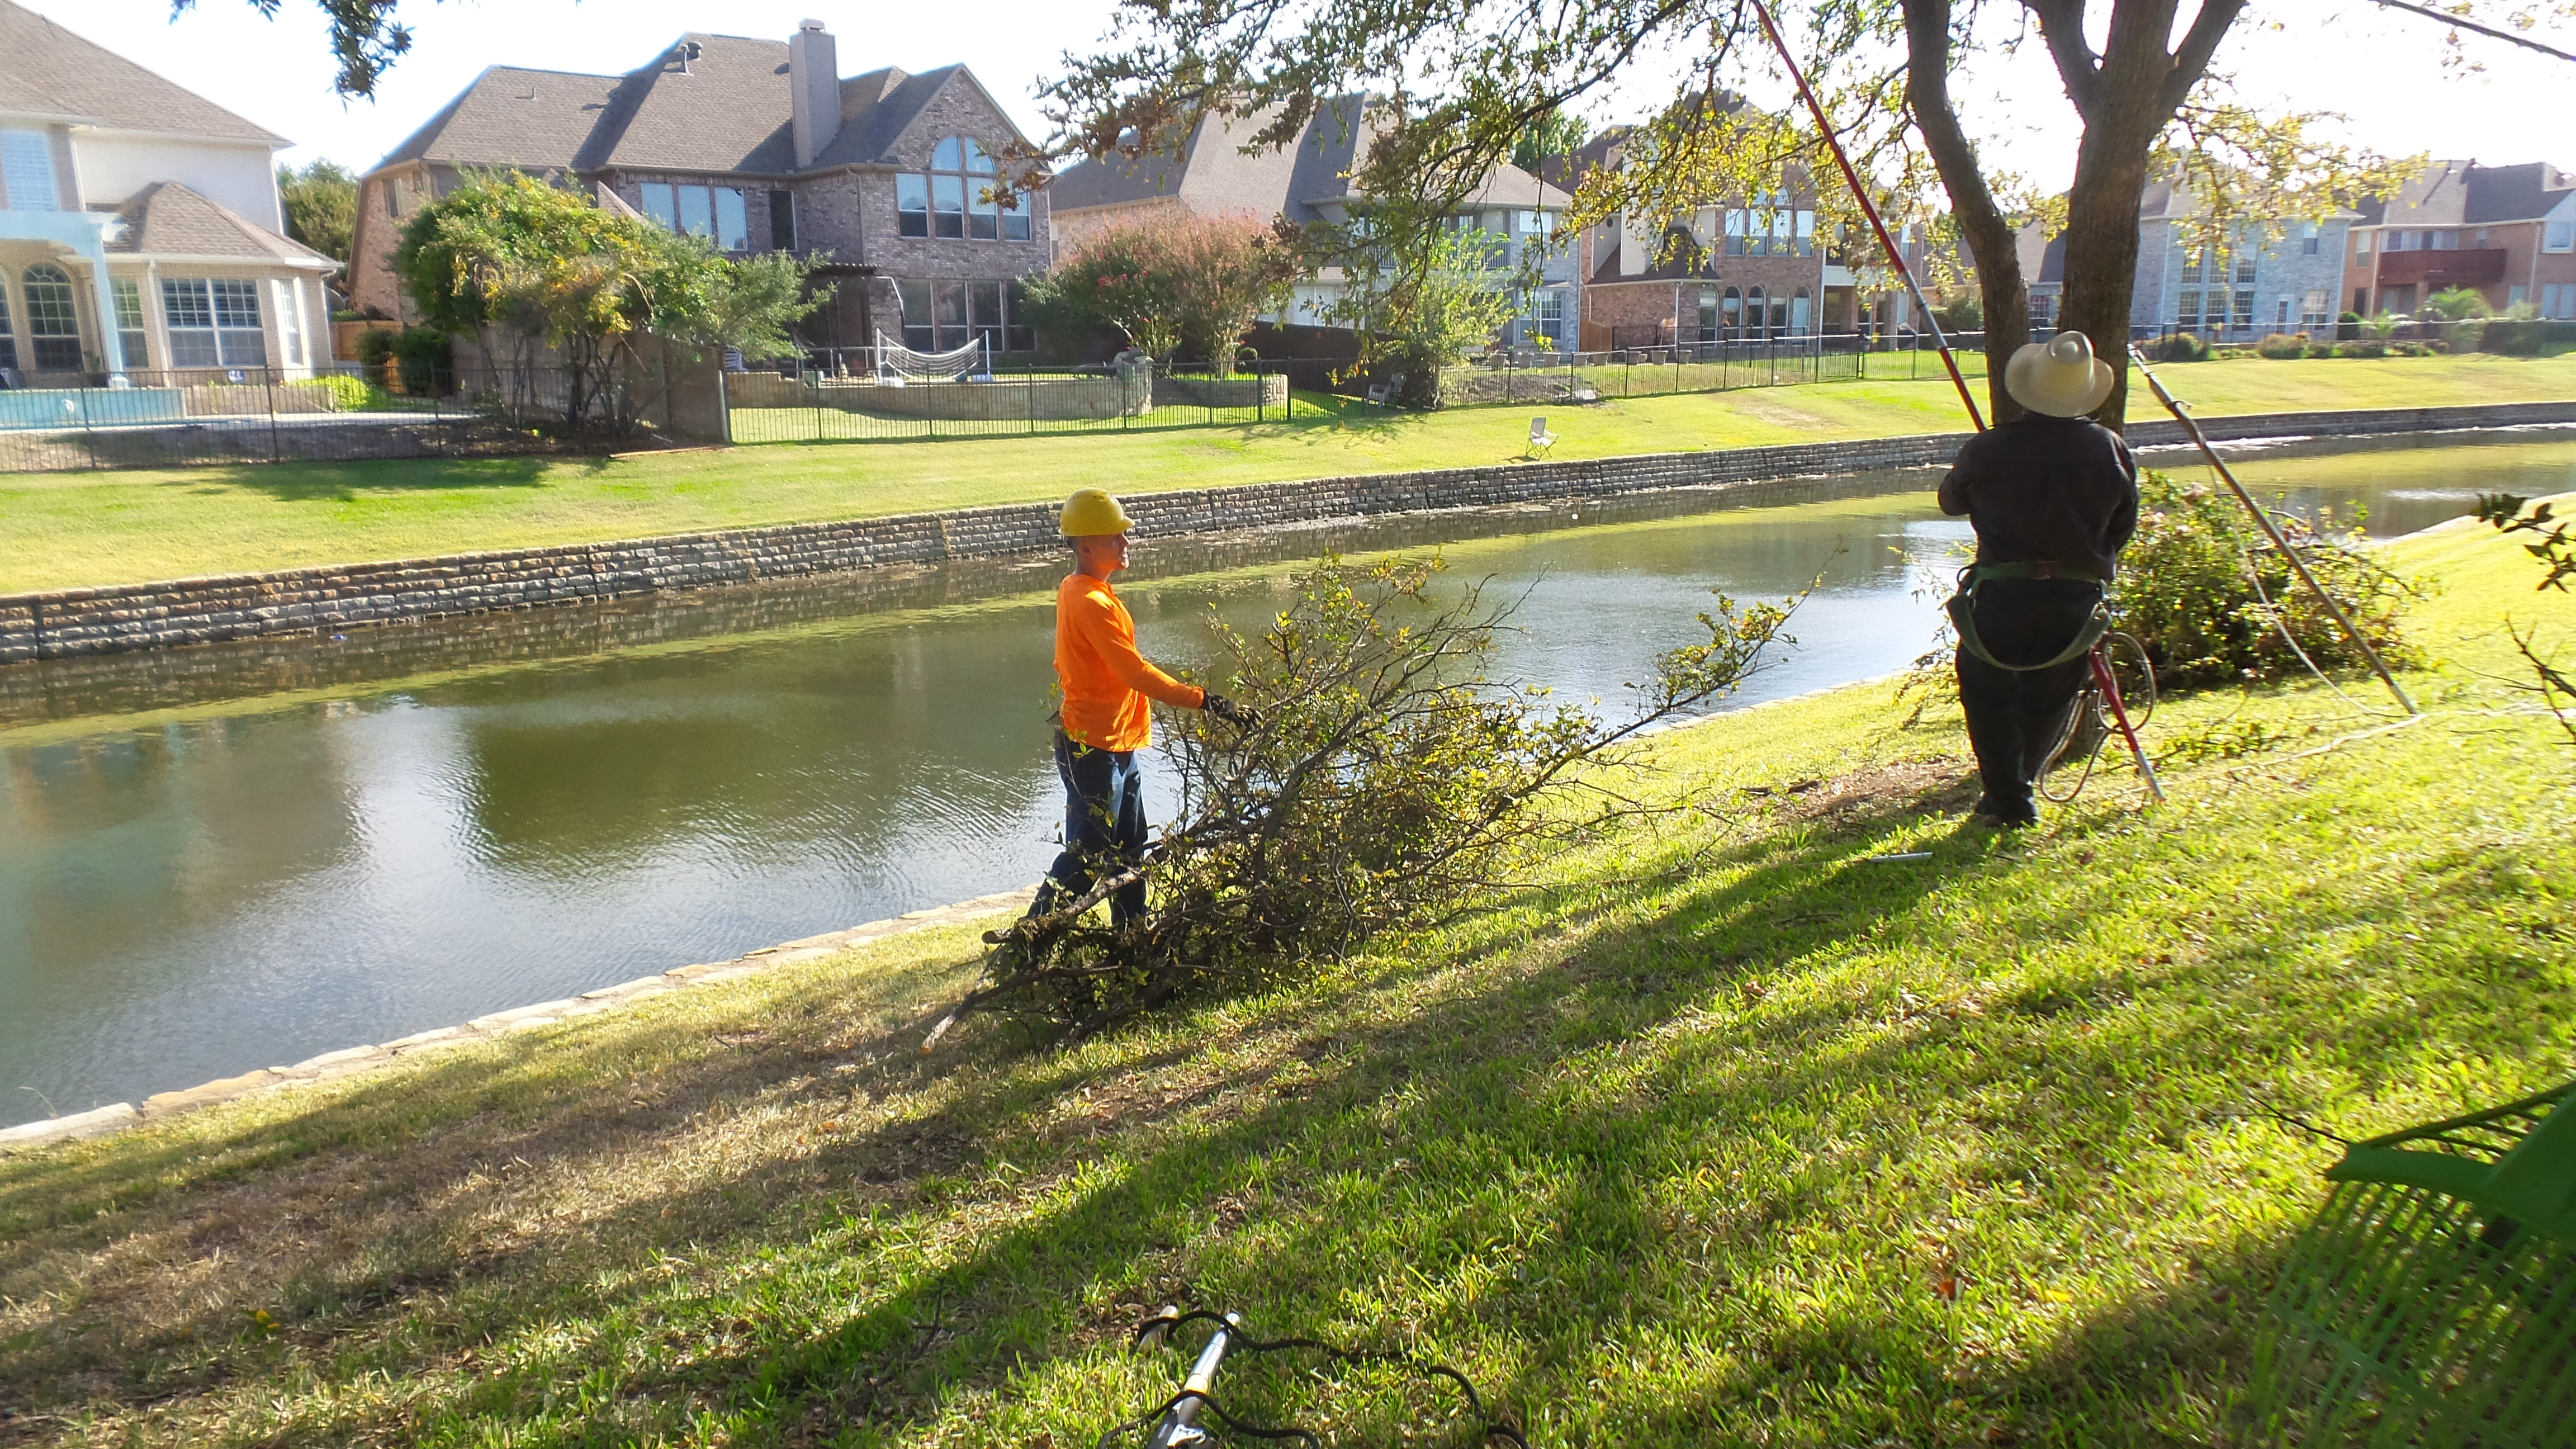 D & J Arborist Tree Services Offers Commercial Tree Services in Plano, Dallas & McKinney, TX